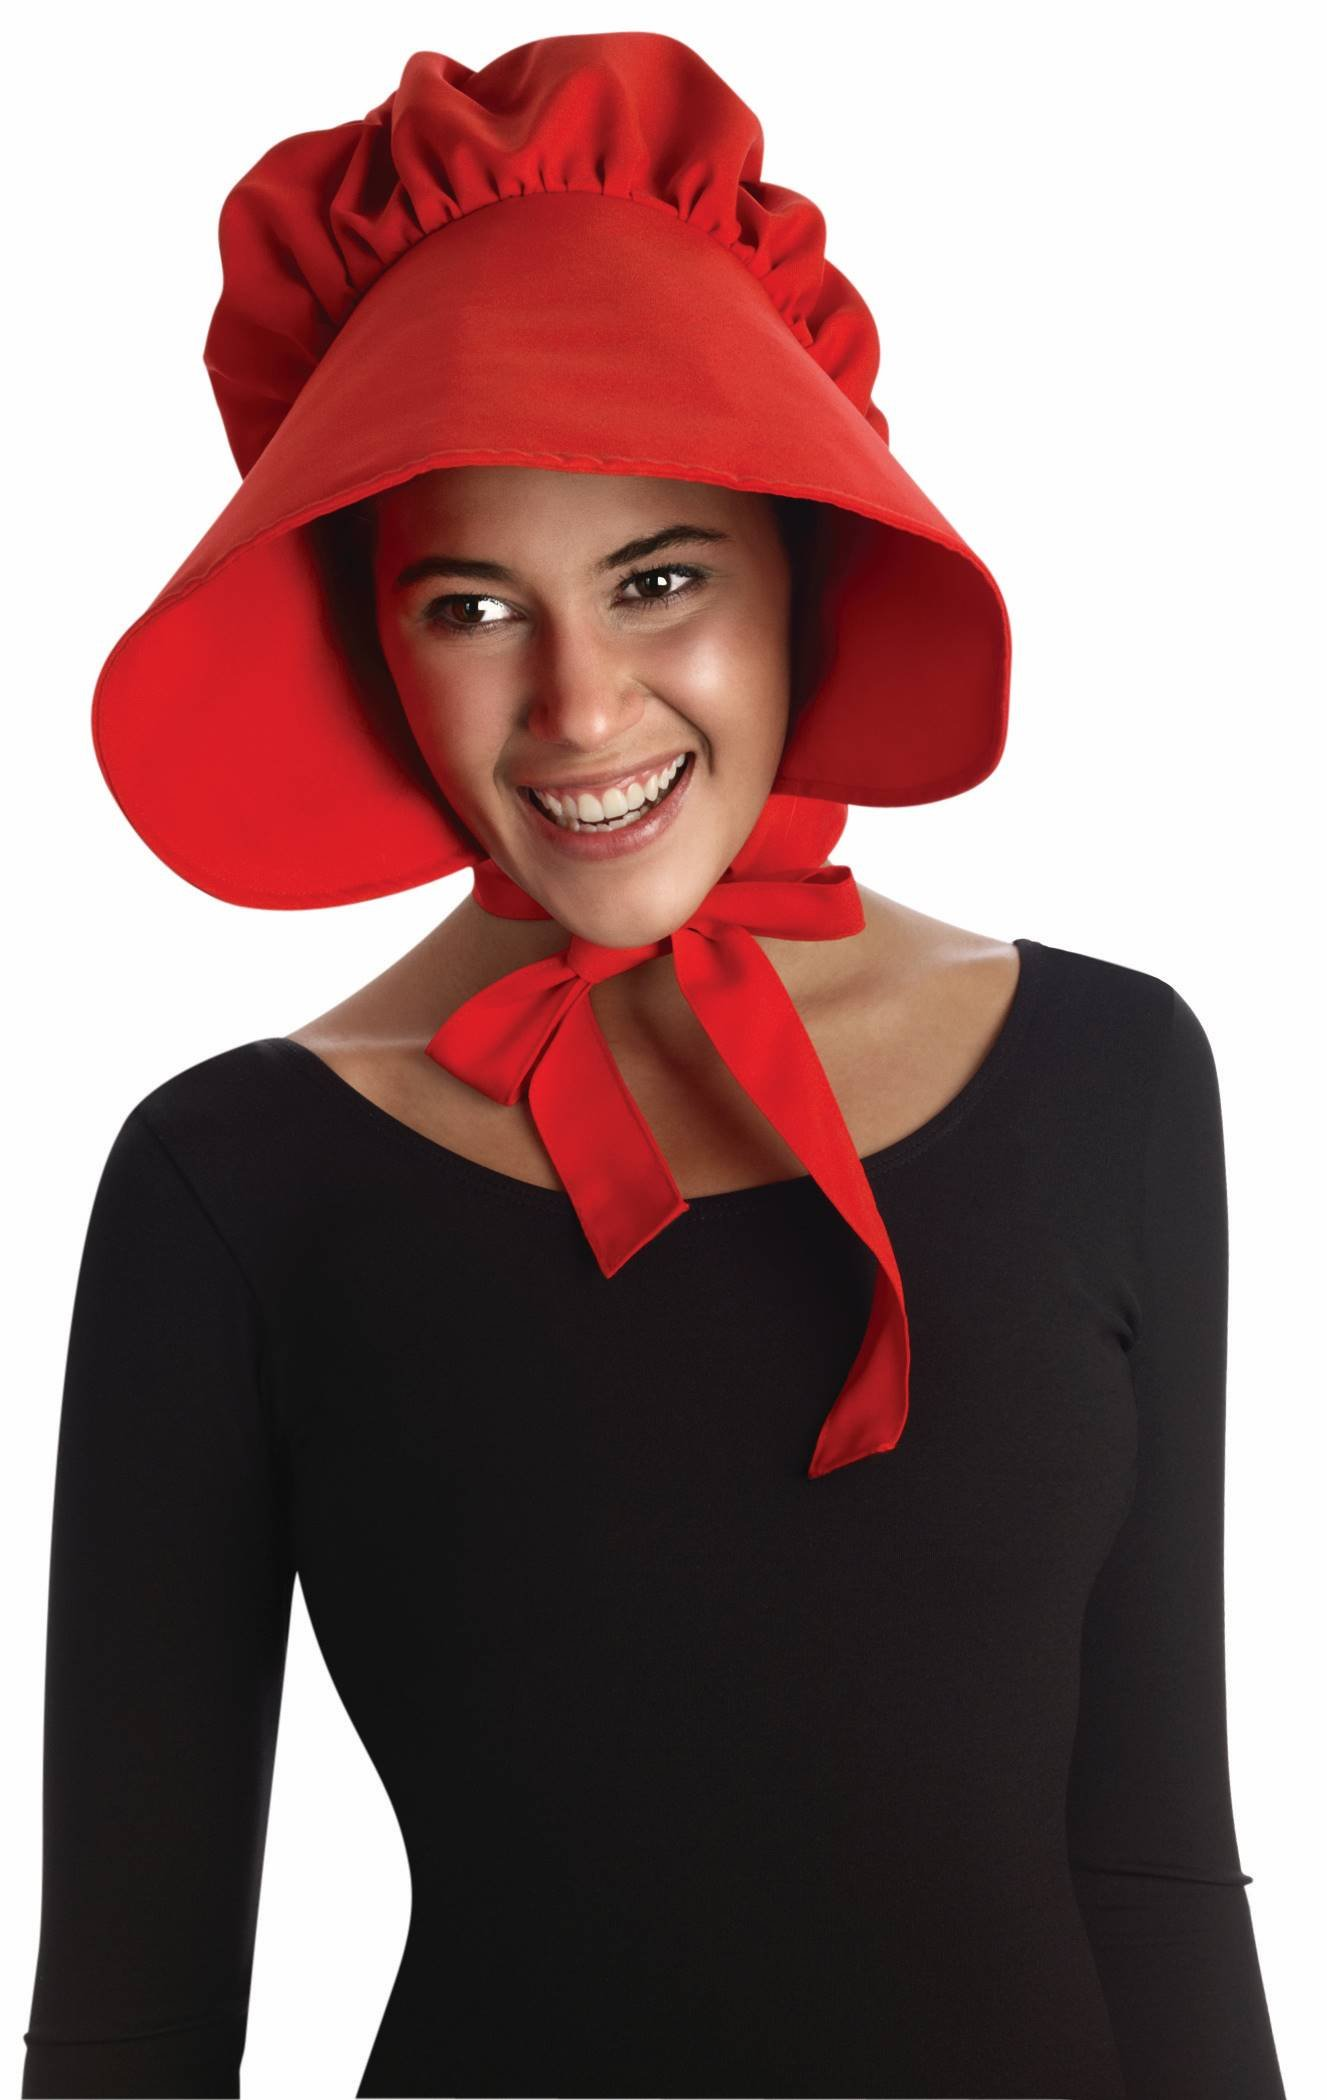 Forum Novelties Women's Colonial Bonnet Costume Accessory, Red, One Size